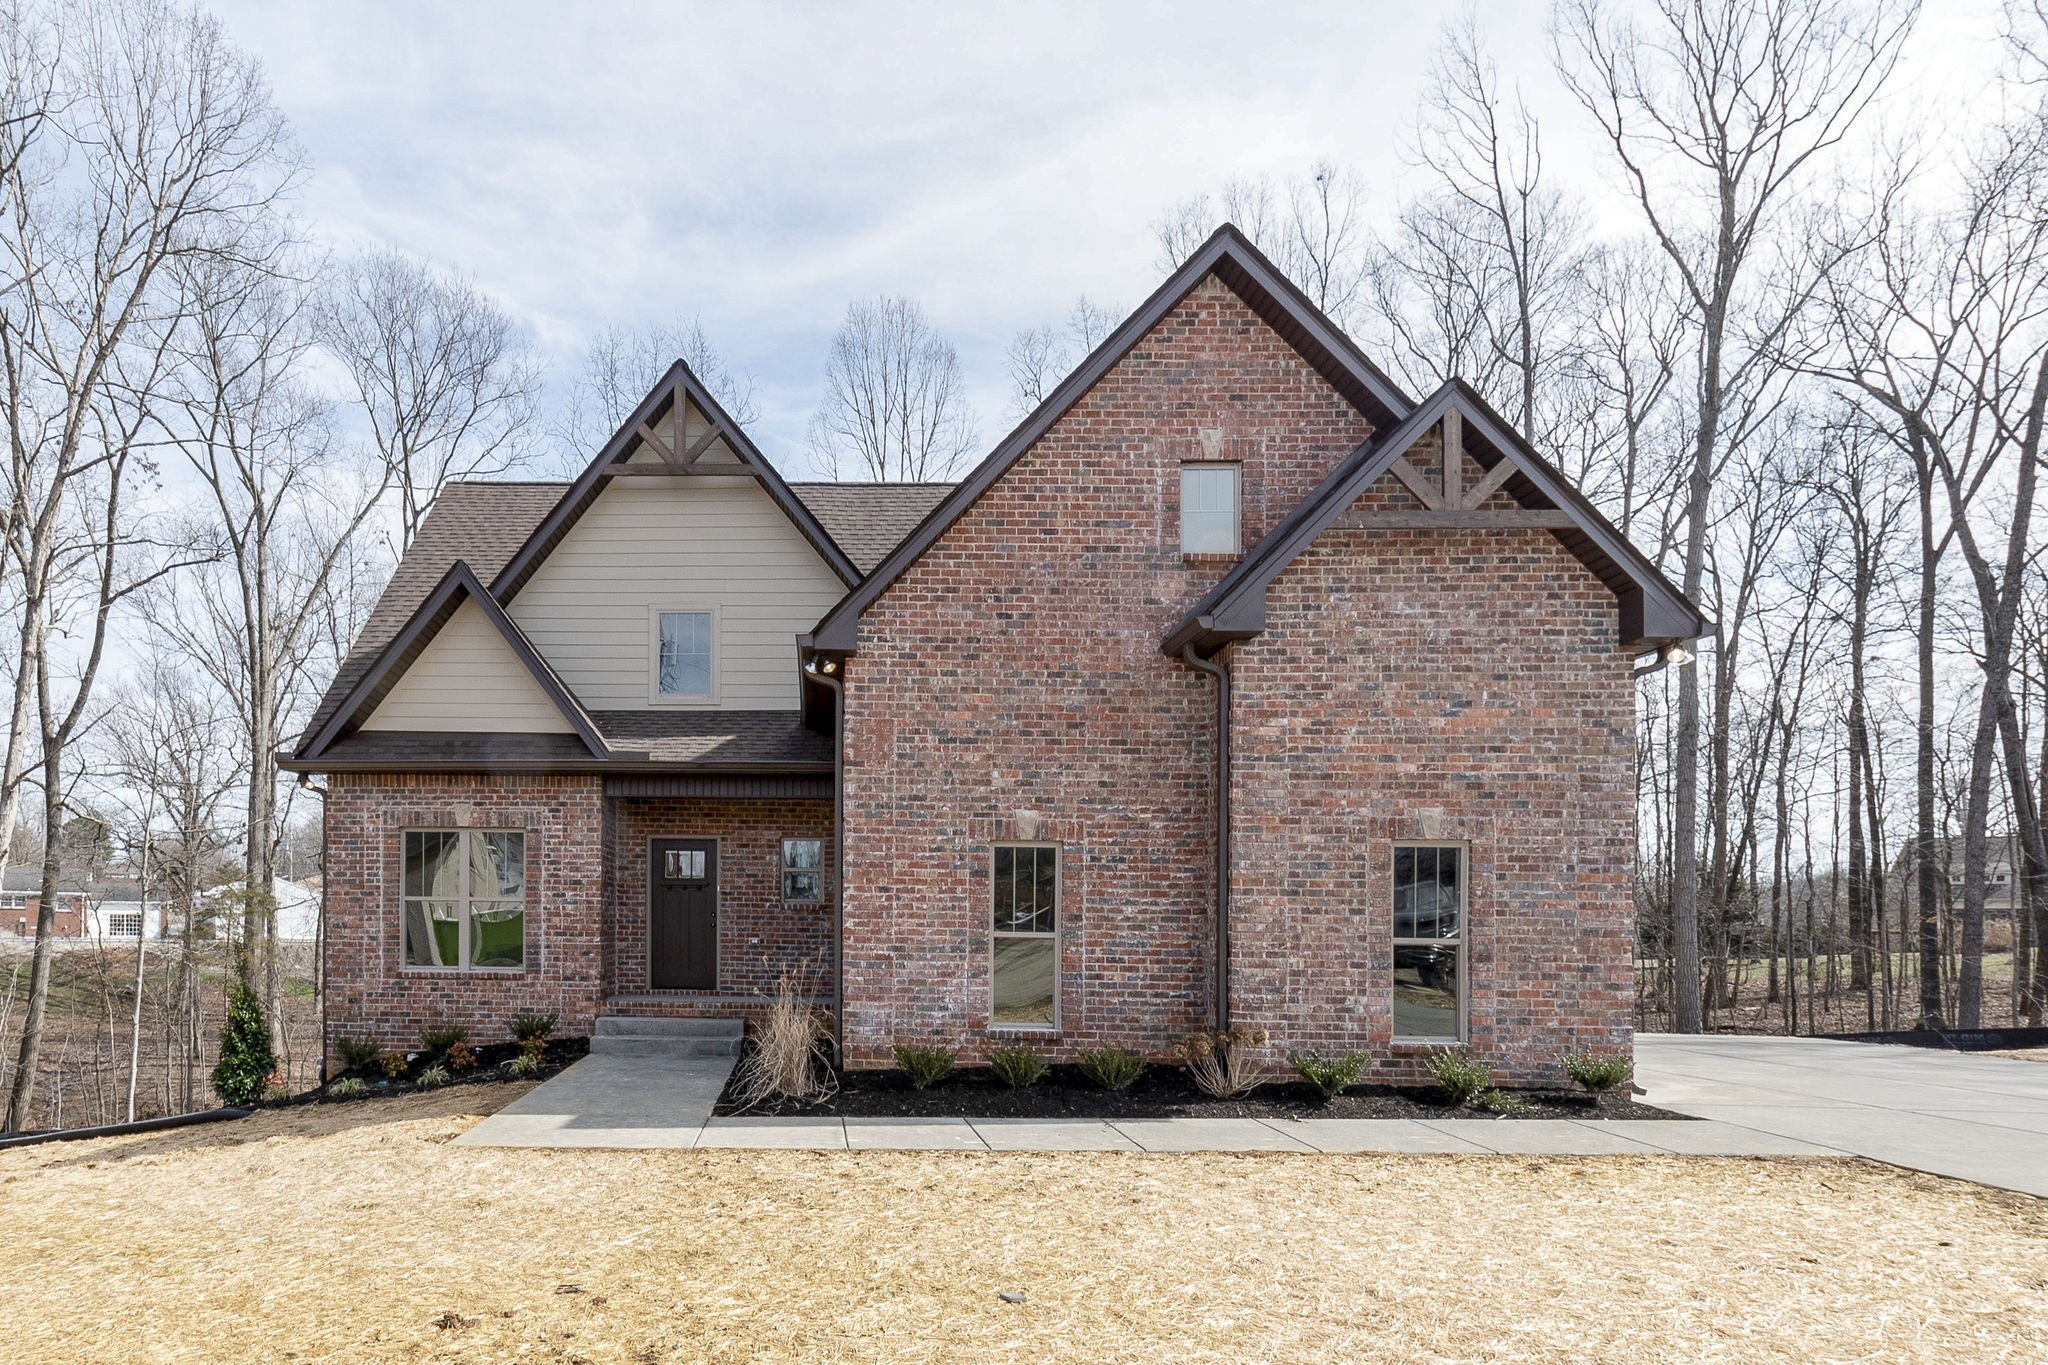 5049 E Mayflower Ct Property Photo - Greenbrier, TN real estate listing